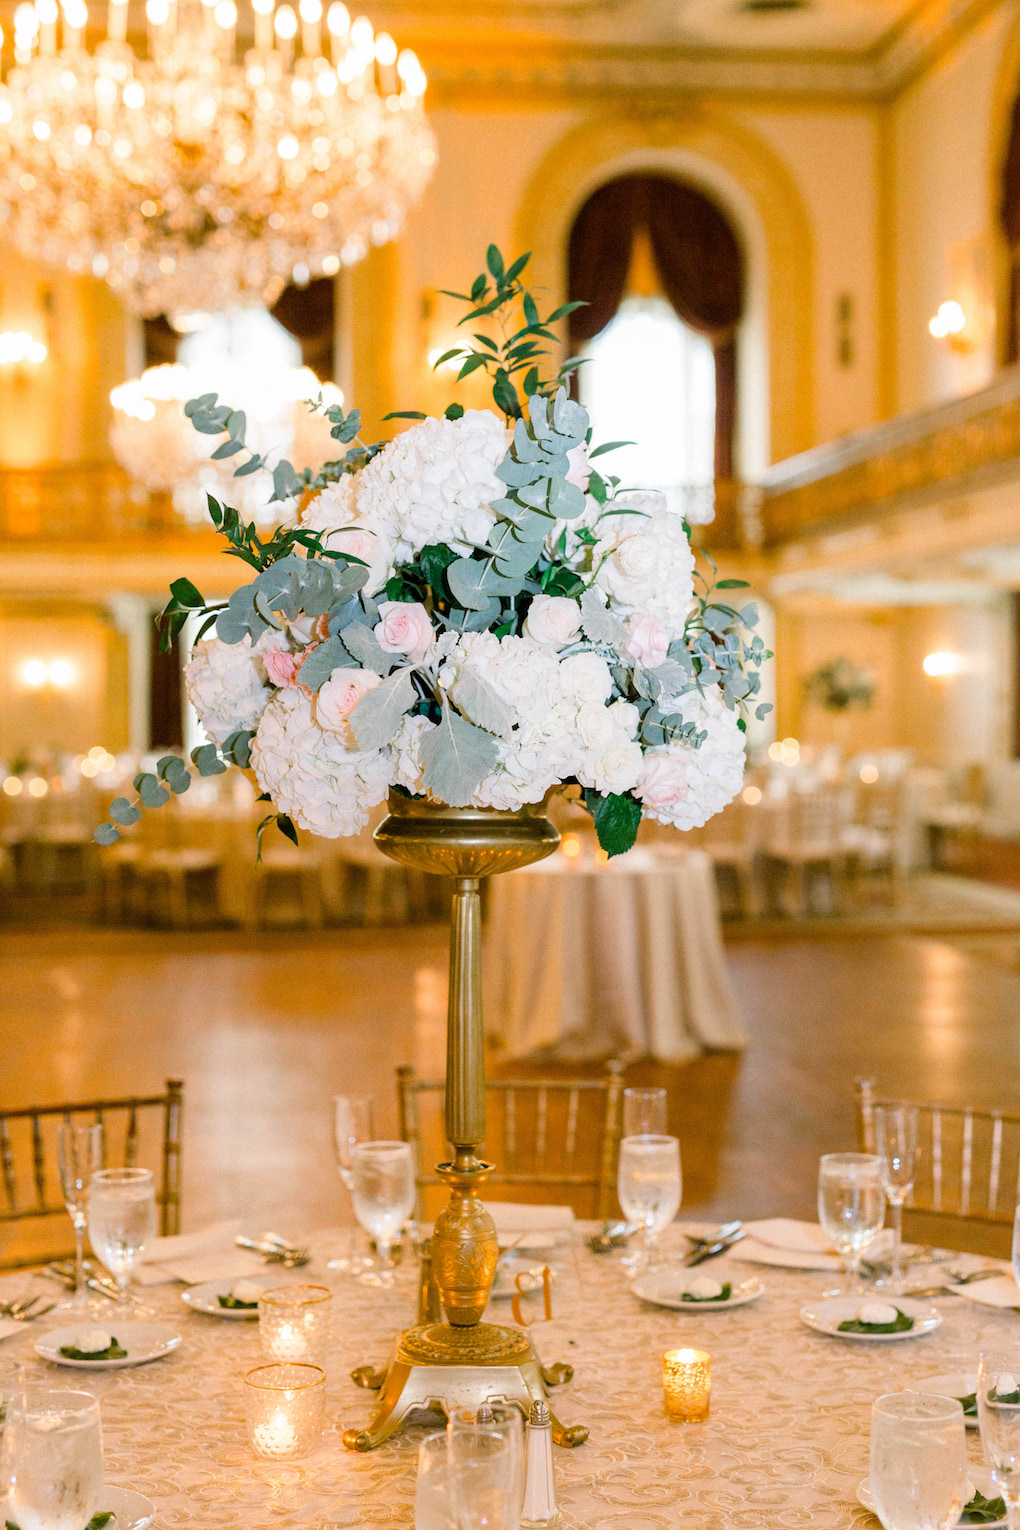 Tall wedding centerpieces: Romantic Fairytale wedding at the Omni William Penn in Pittsburgh, PA planned by Exhale Events. Find more wedding inspiration at exhale-events.com!